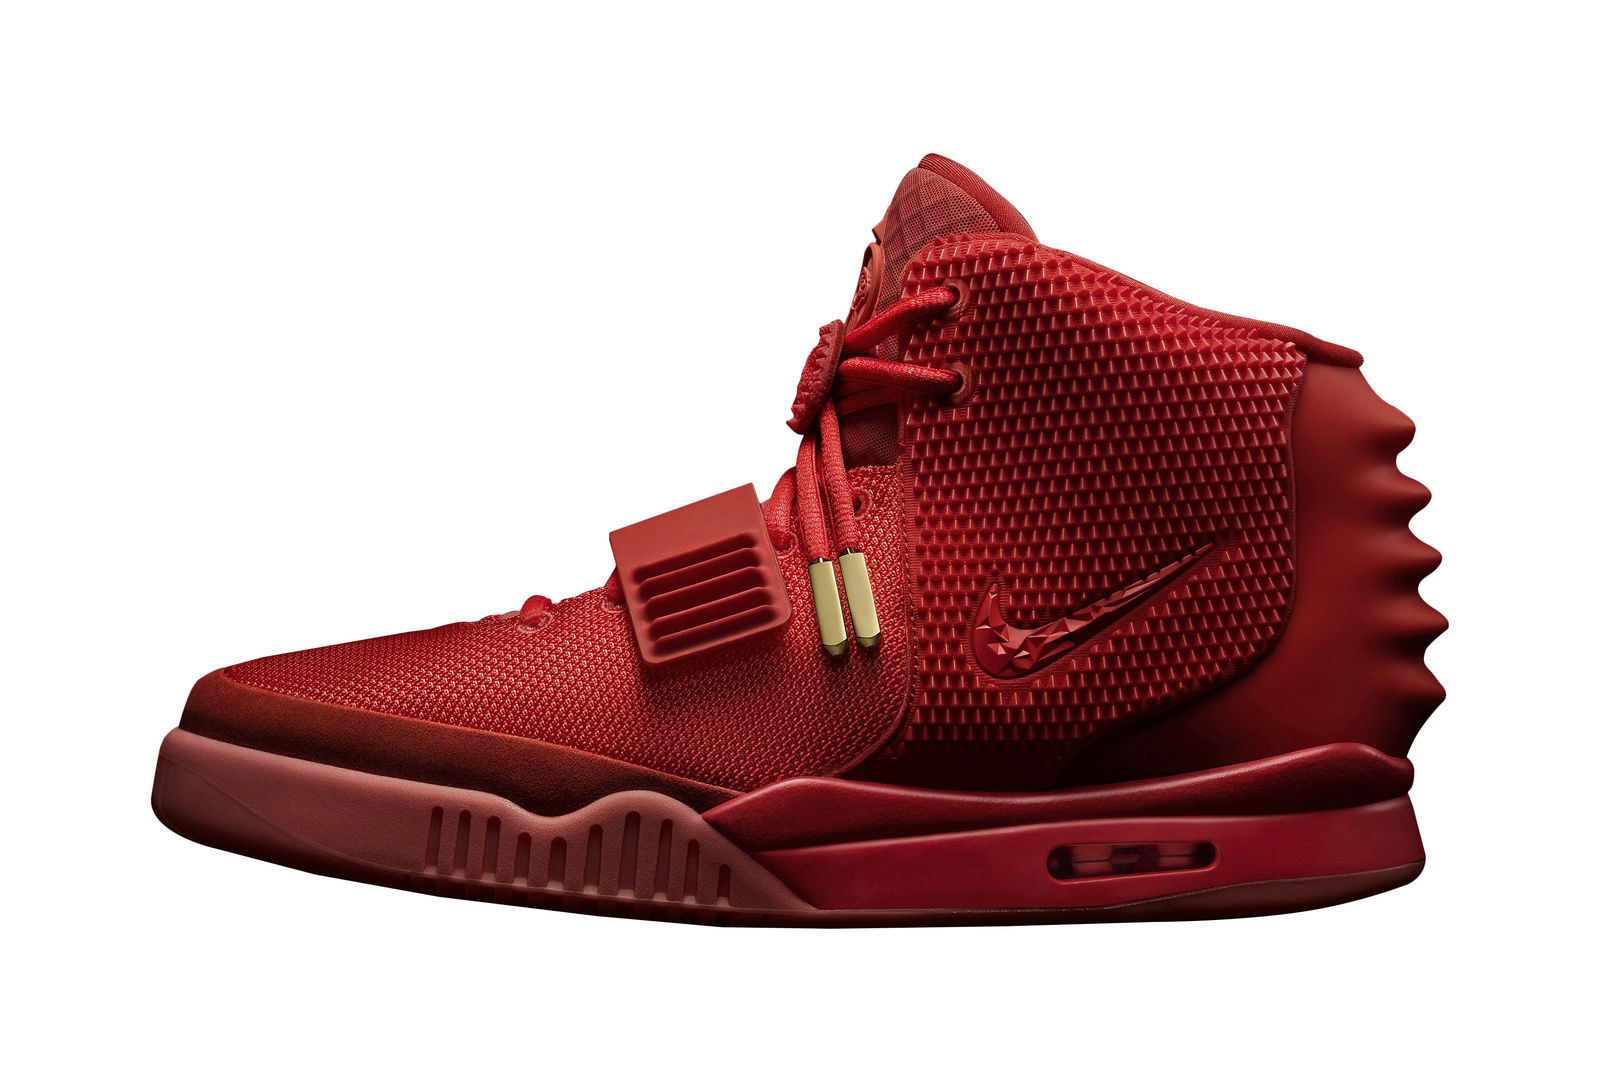 86c5ea4e097 Nike Air Yeezy 2 Red October Kanye West Size 10 With Receipt 100 ...